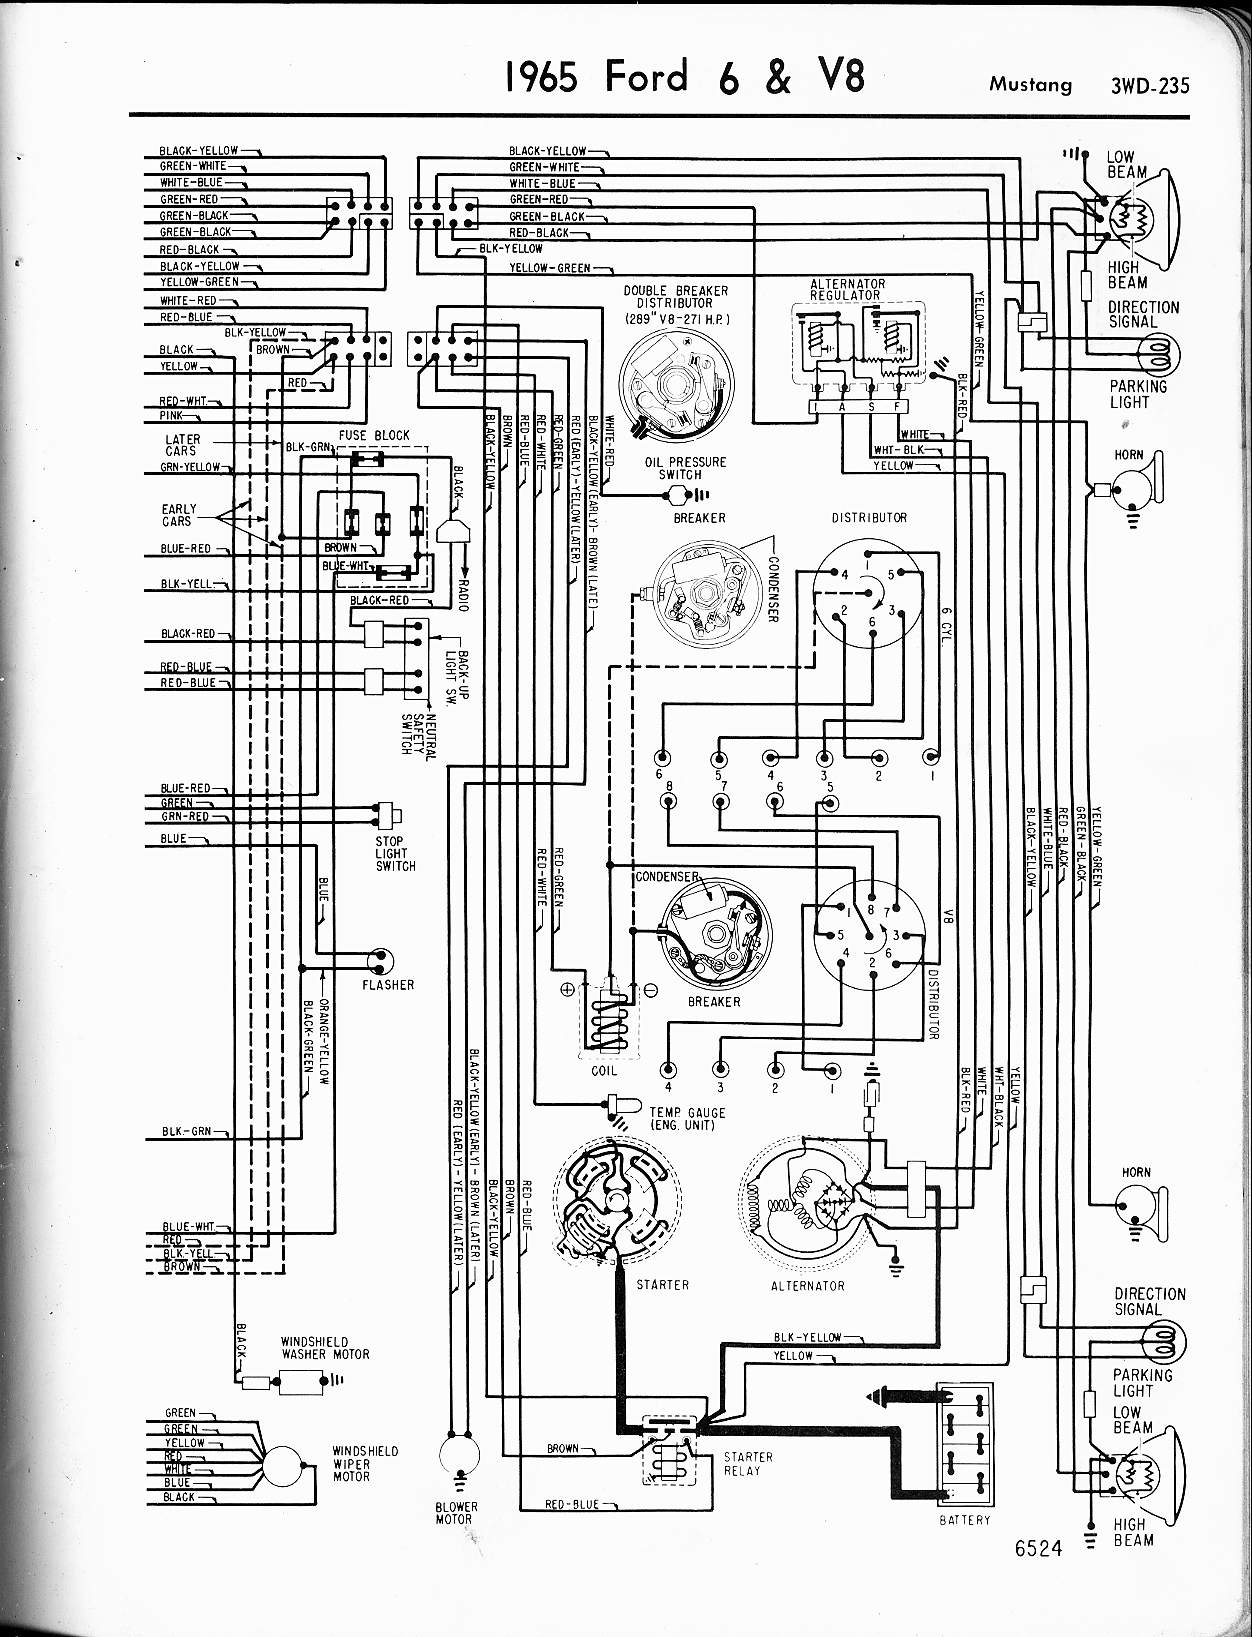 1971 Ford Mustang Mercury Cougar Factory Wiring Diagram